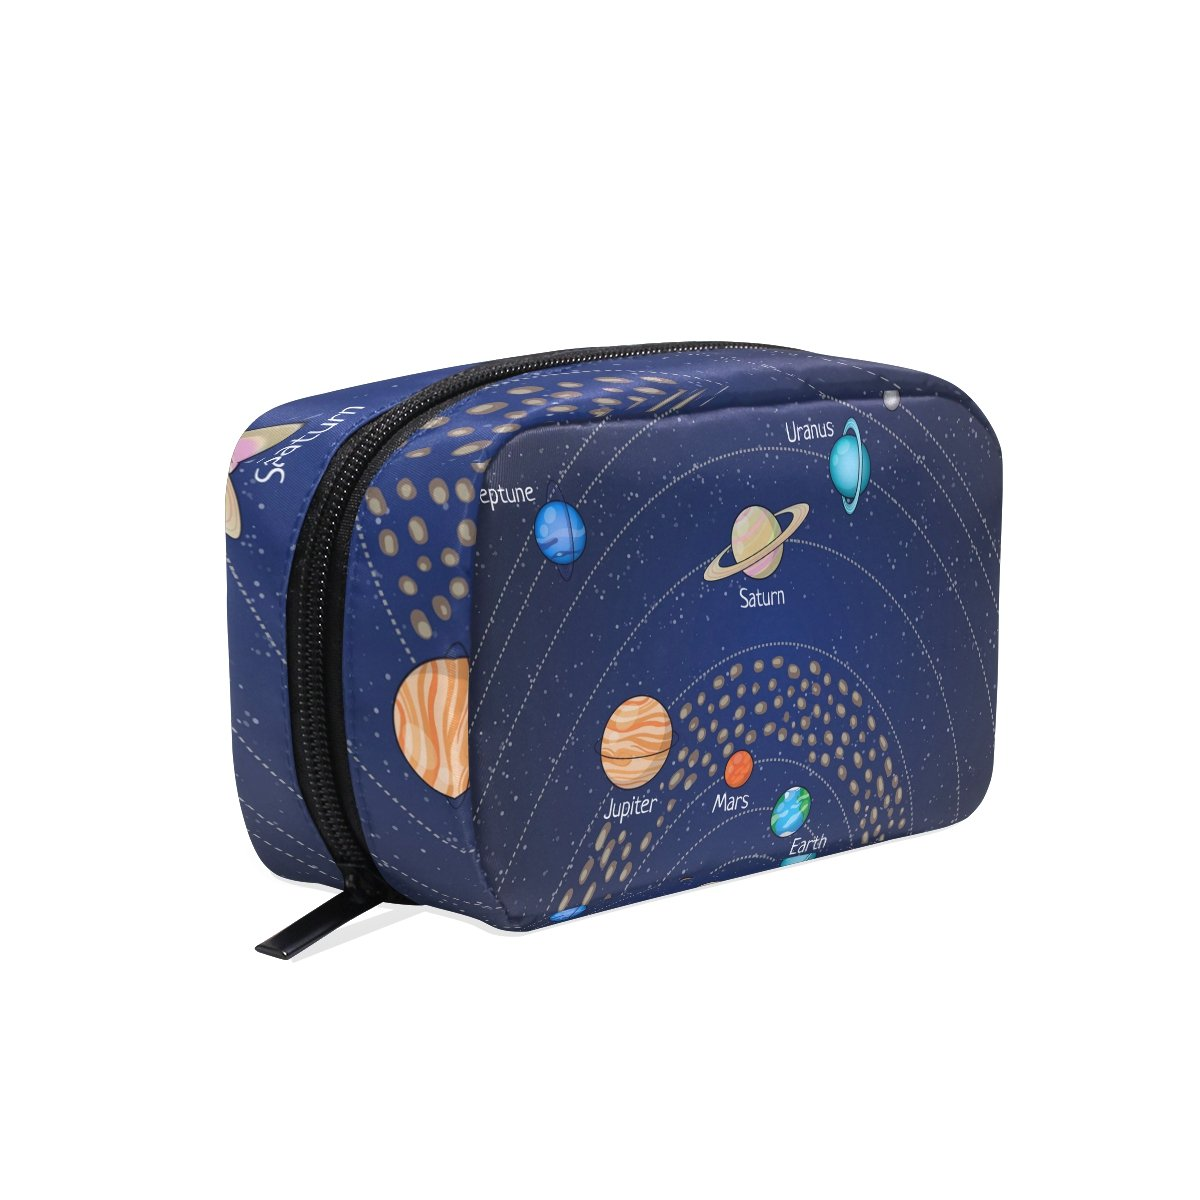 COOSUN Educational Astronomy Planet Cosmetic Pouch Clutch Makeup Bag Travel Organizer Case Toiletry Pouch for Women DragonSwordlinsu